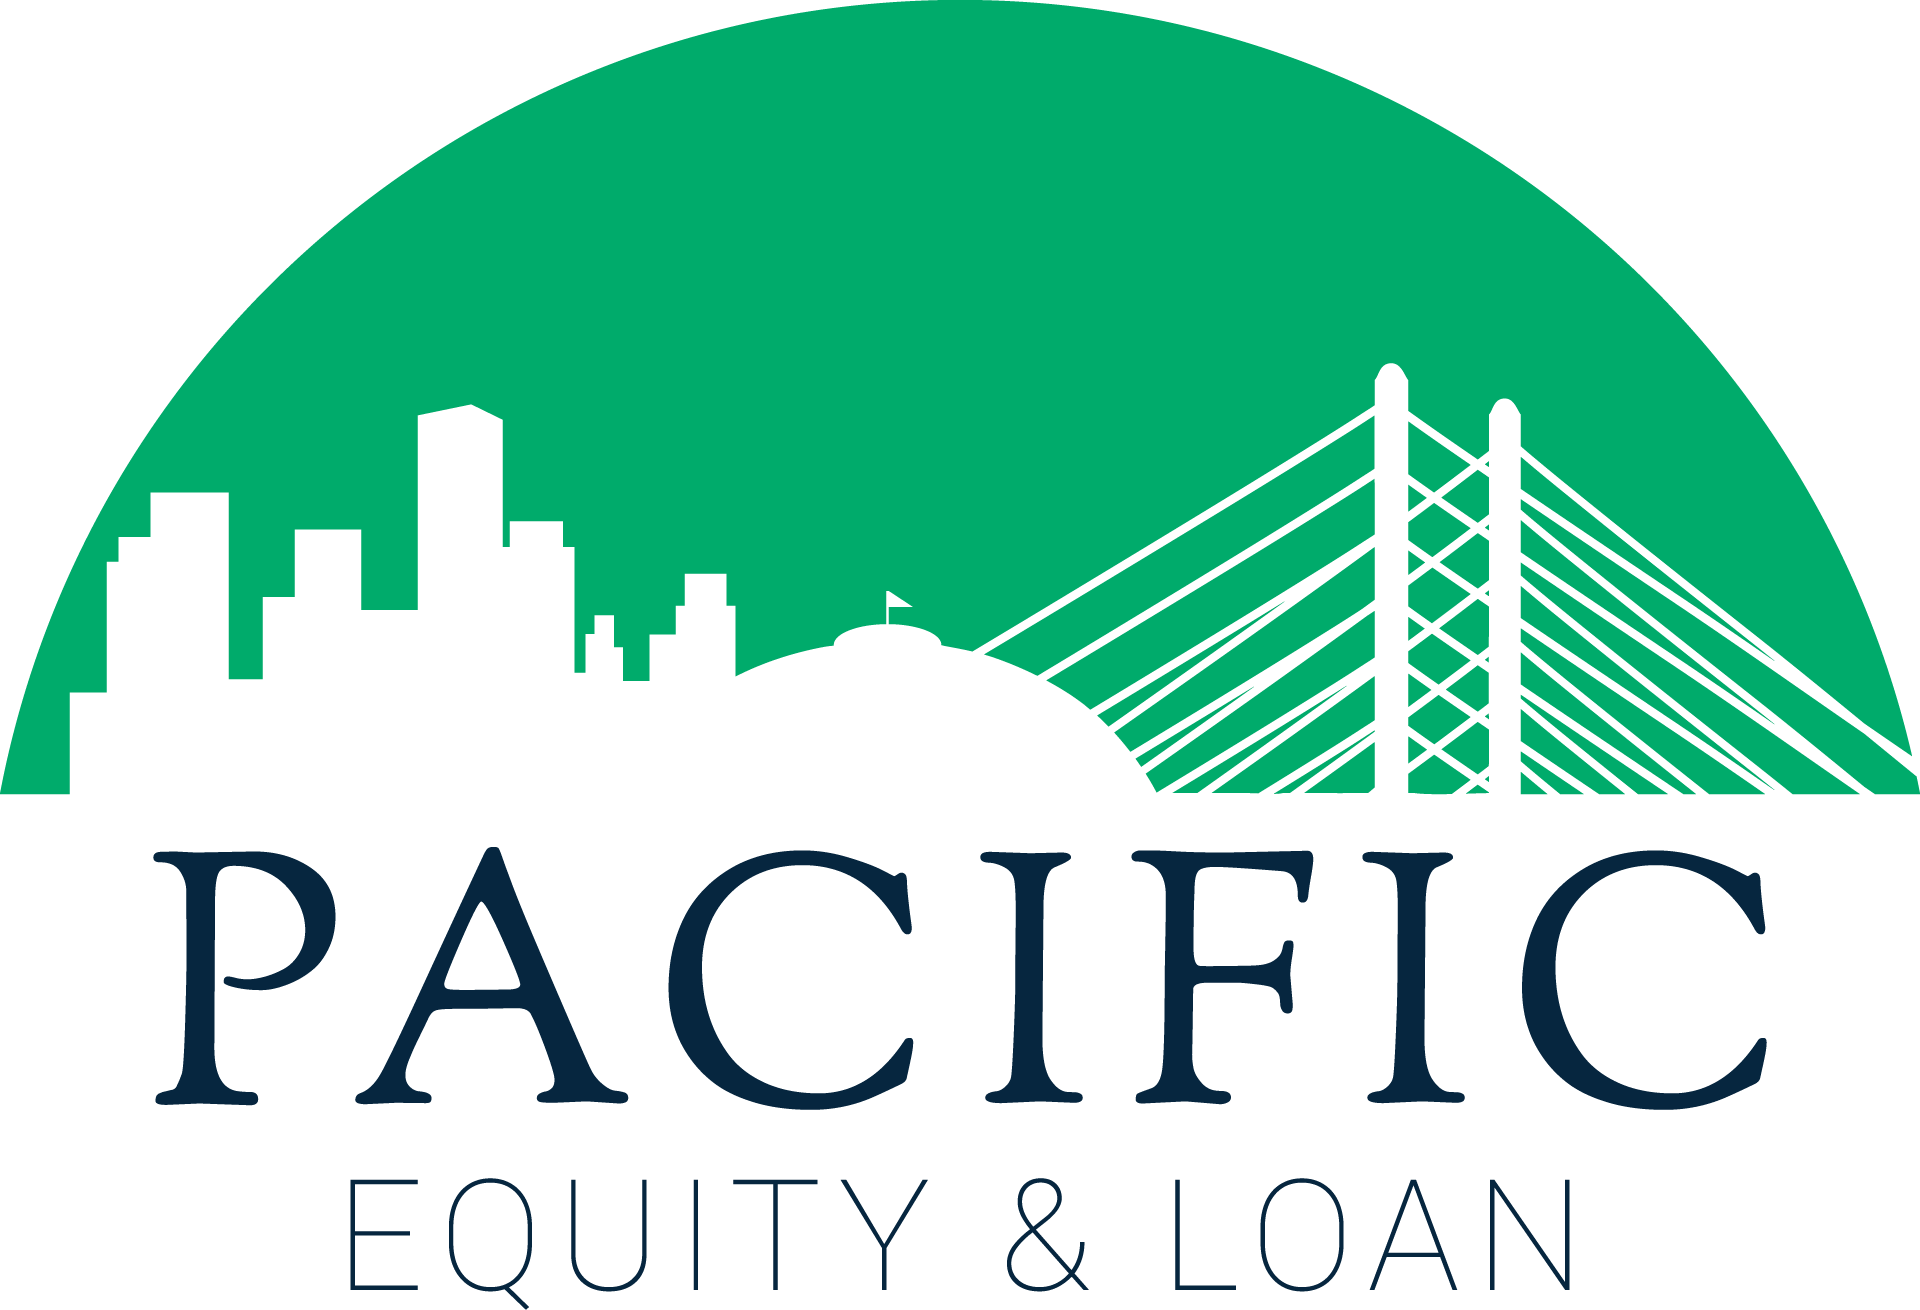 Pacific Equity & Loan